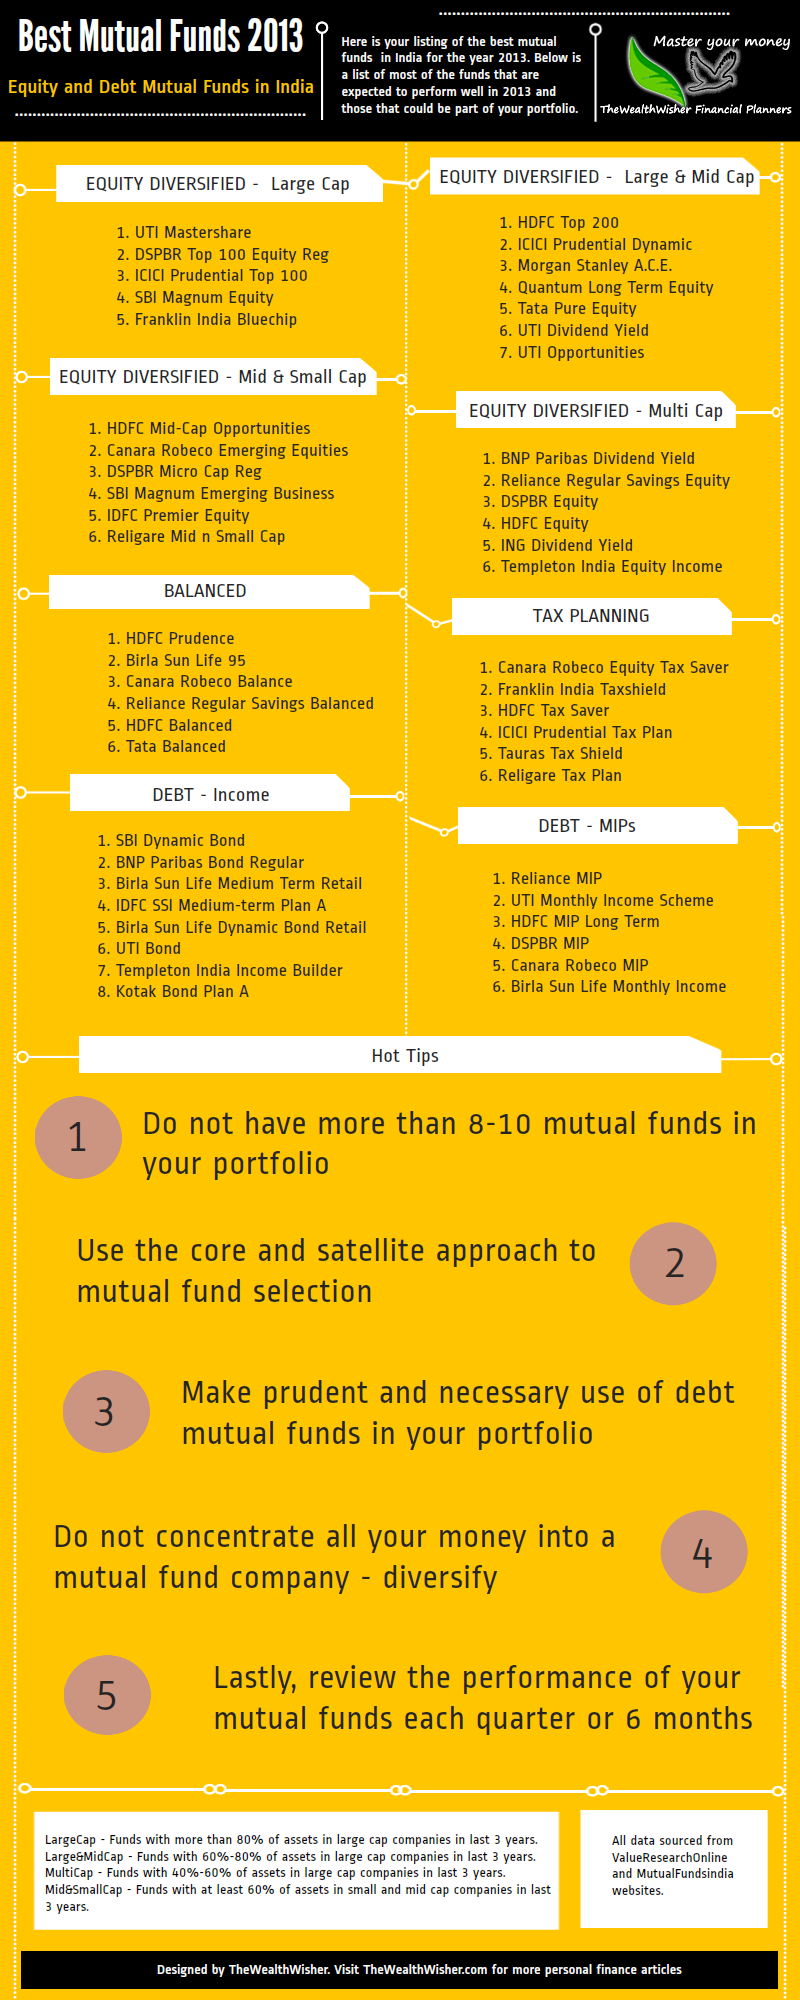 Best Mutual Funds To Invest In 2013 In India Infographic With Images Mutuals Funds Mutual Fund India Fund